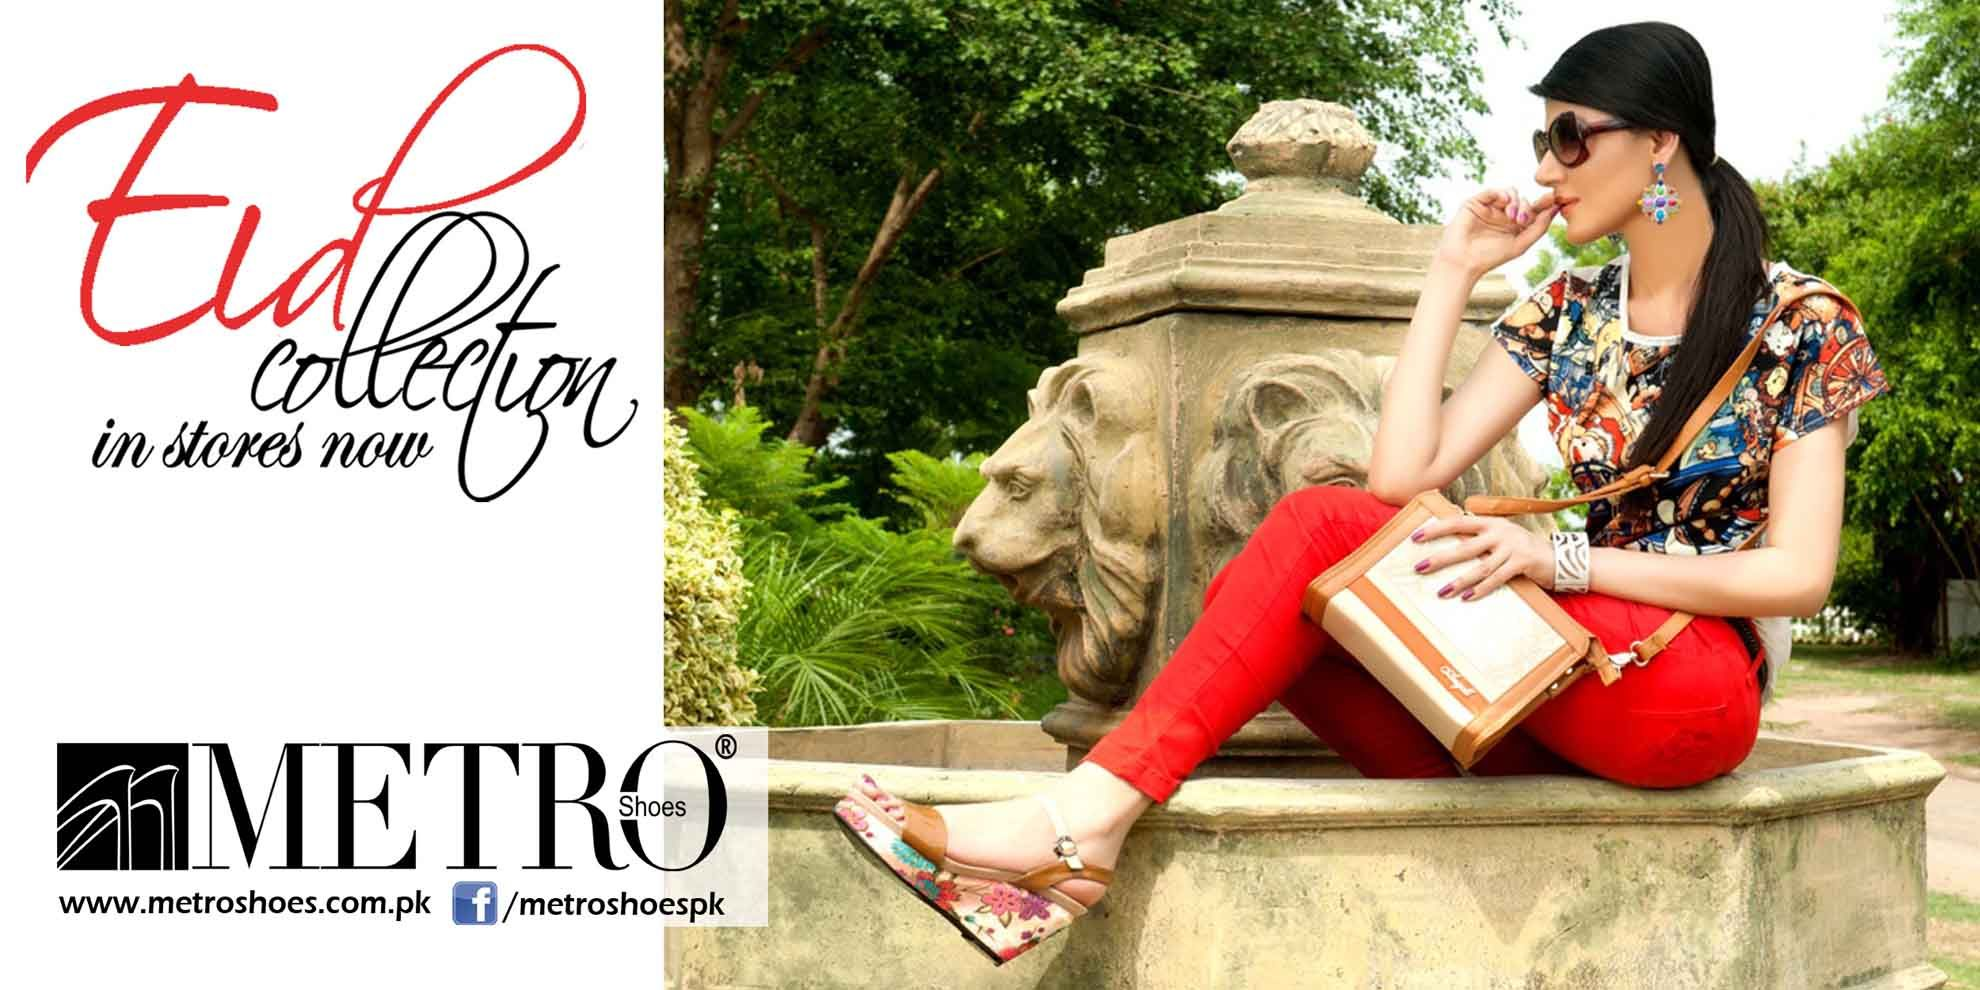 Metro Shoes launched Eid Collection 2013 on all outlets, This collection  has consists of flats